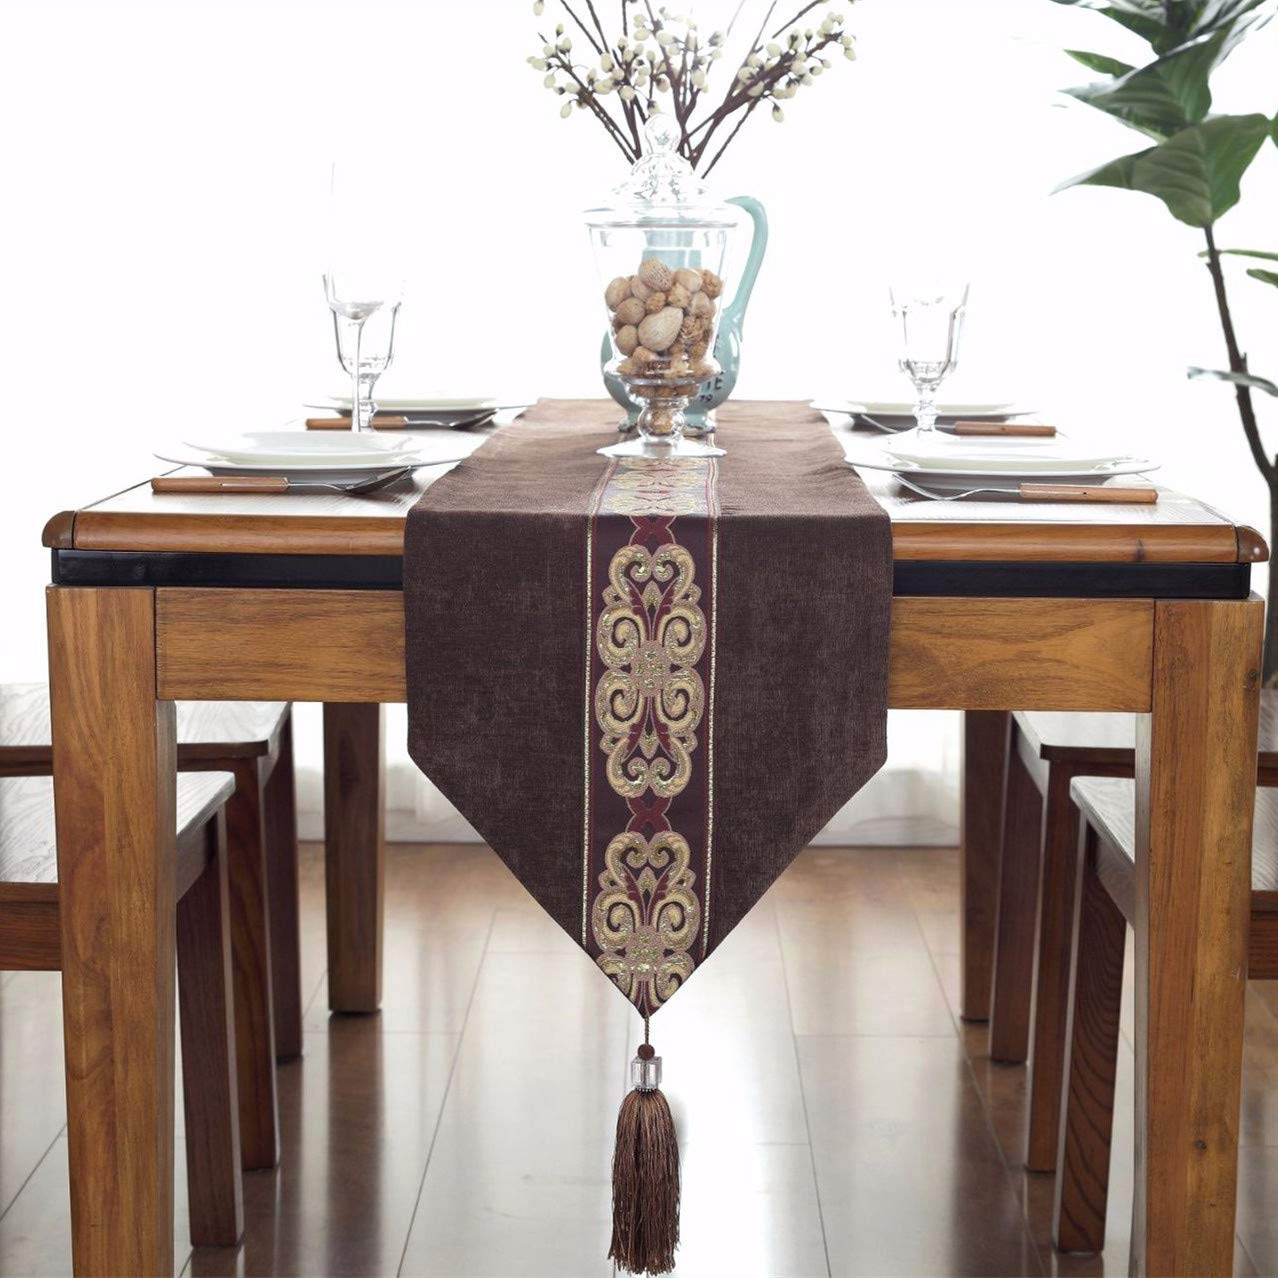 European Vintage Table Runner and Dresser Scarf with Tassels Middle Stripe Home Decor, 13 x 70 Inch, Coffee